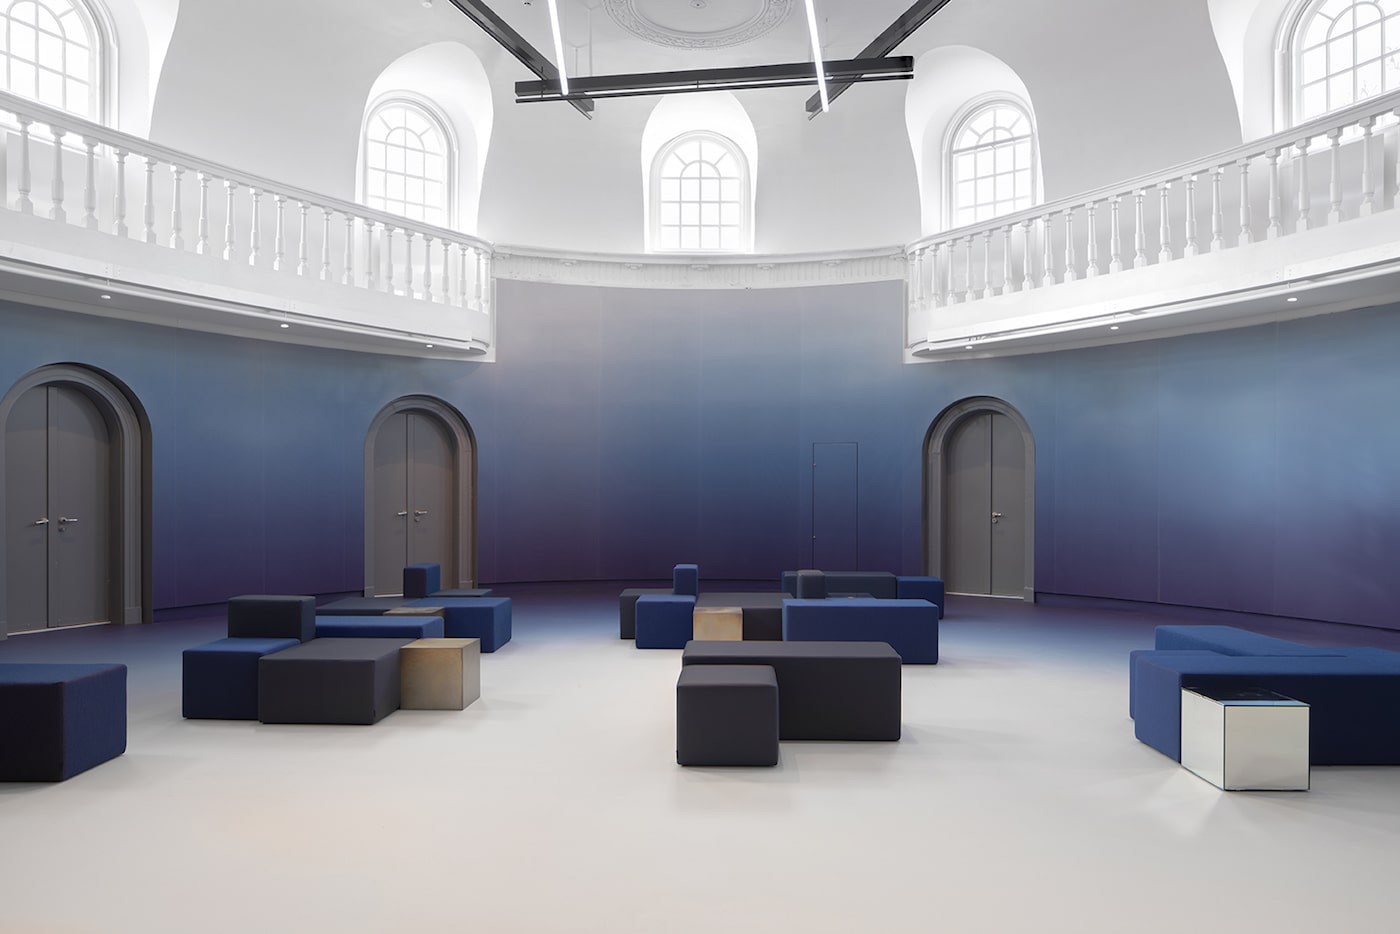 Felix Meritis lobby with blue walls and white ceiling